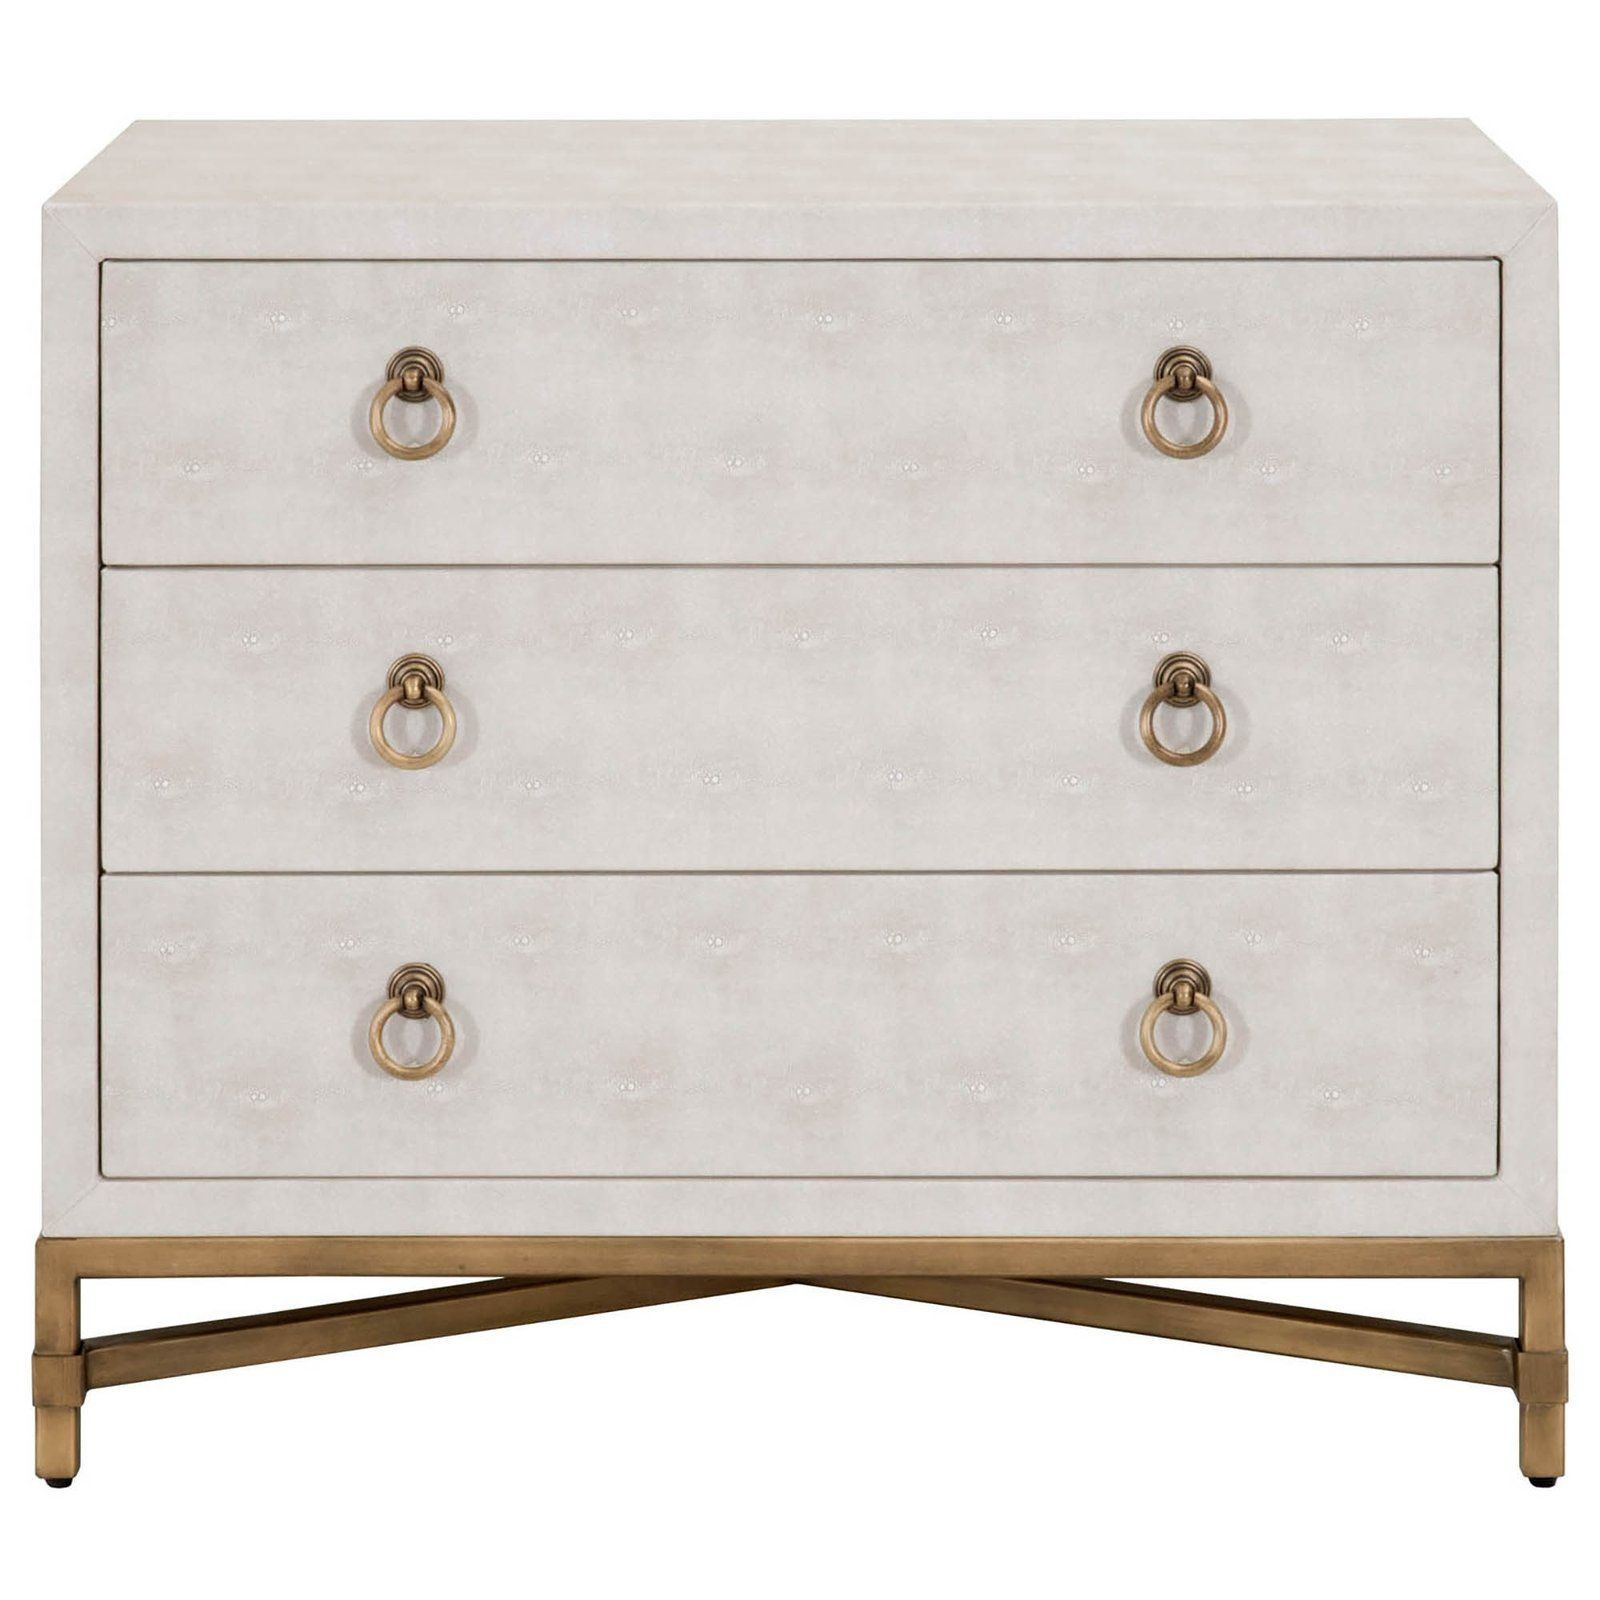 Candelabra Home Strand Shagreen 3 Drawer Nightstand White In 2020 Gold Nightstand Nightstand White Nightstand